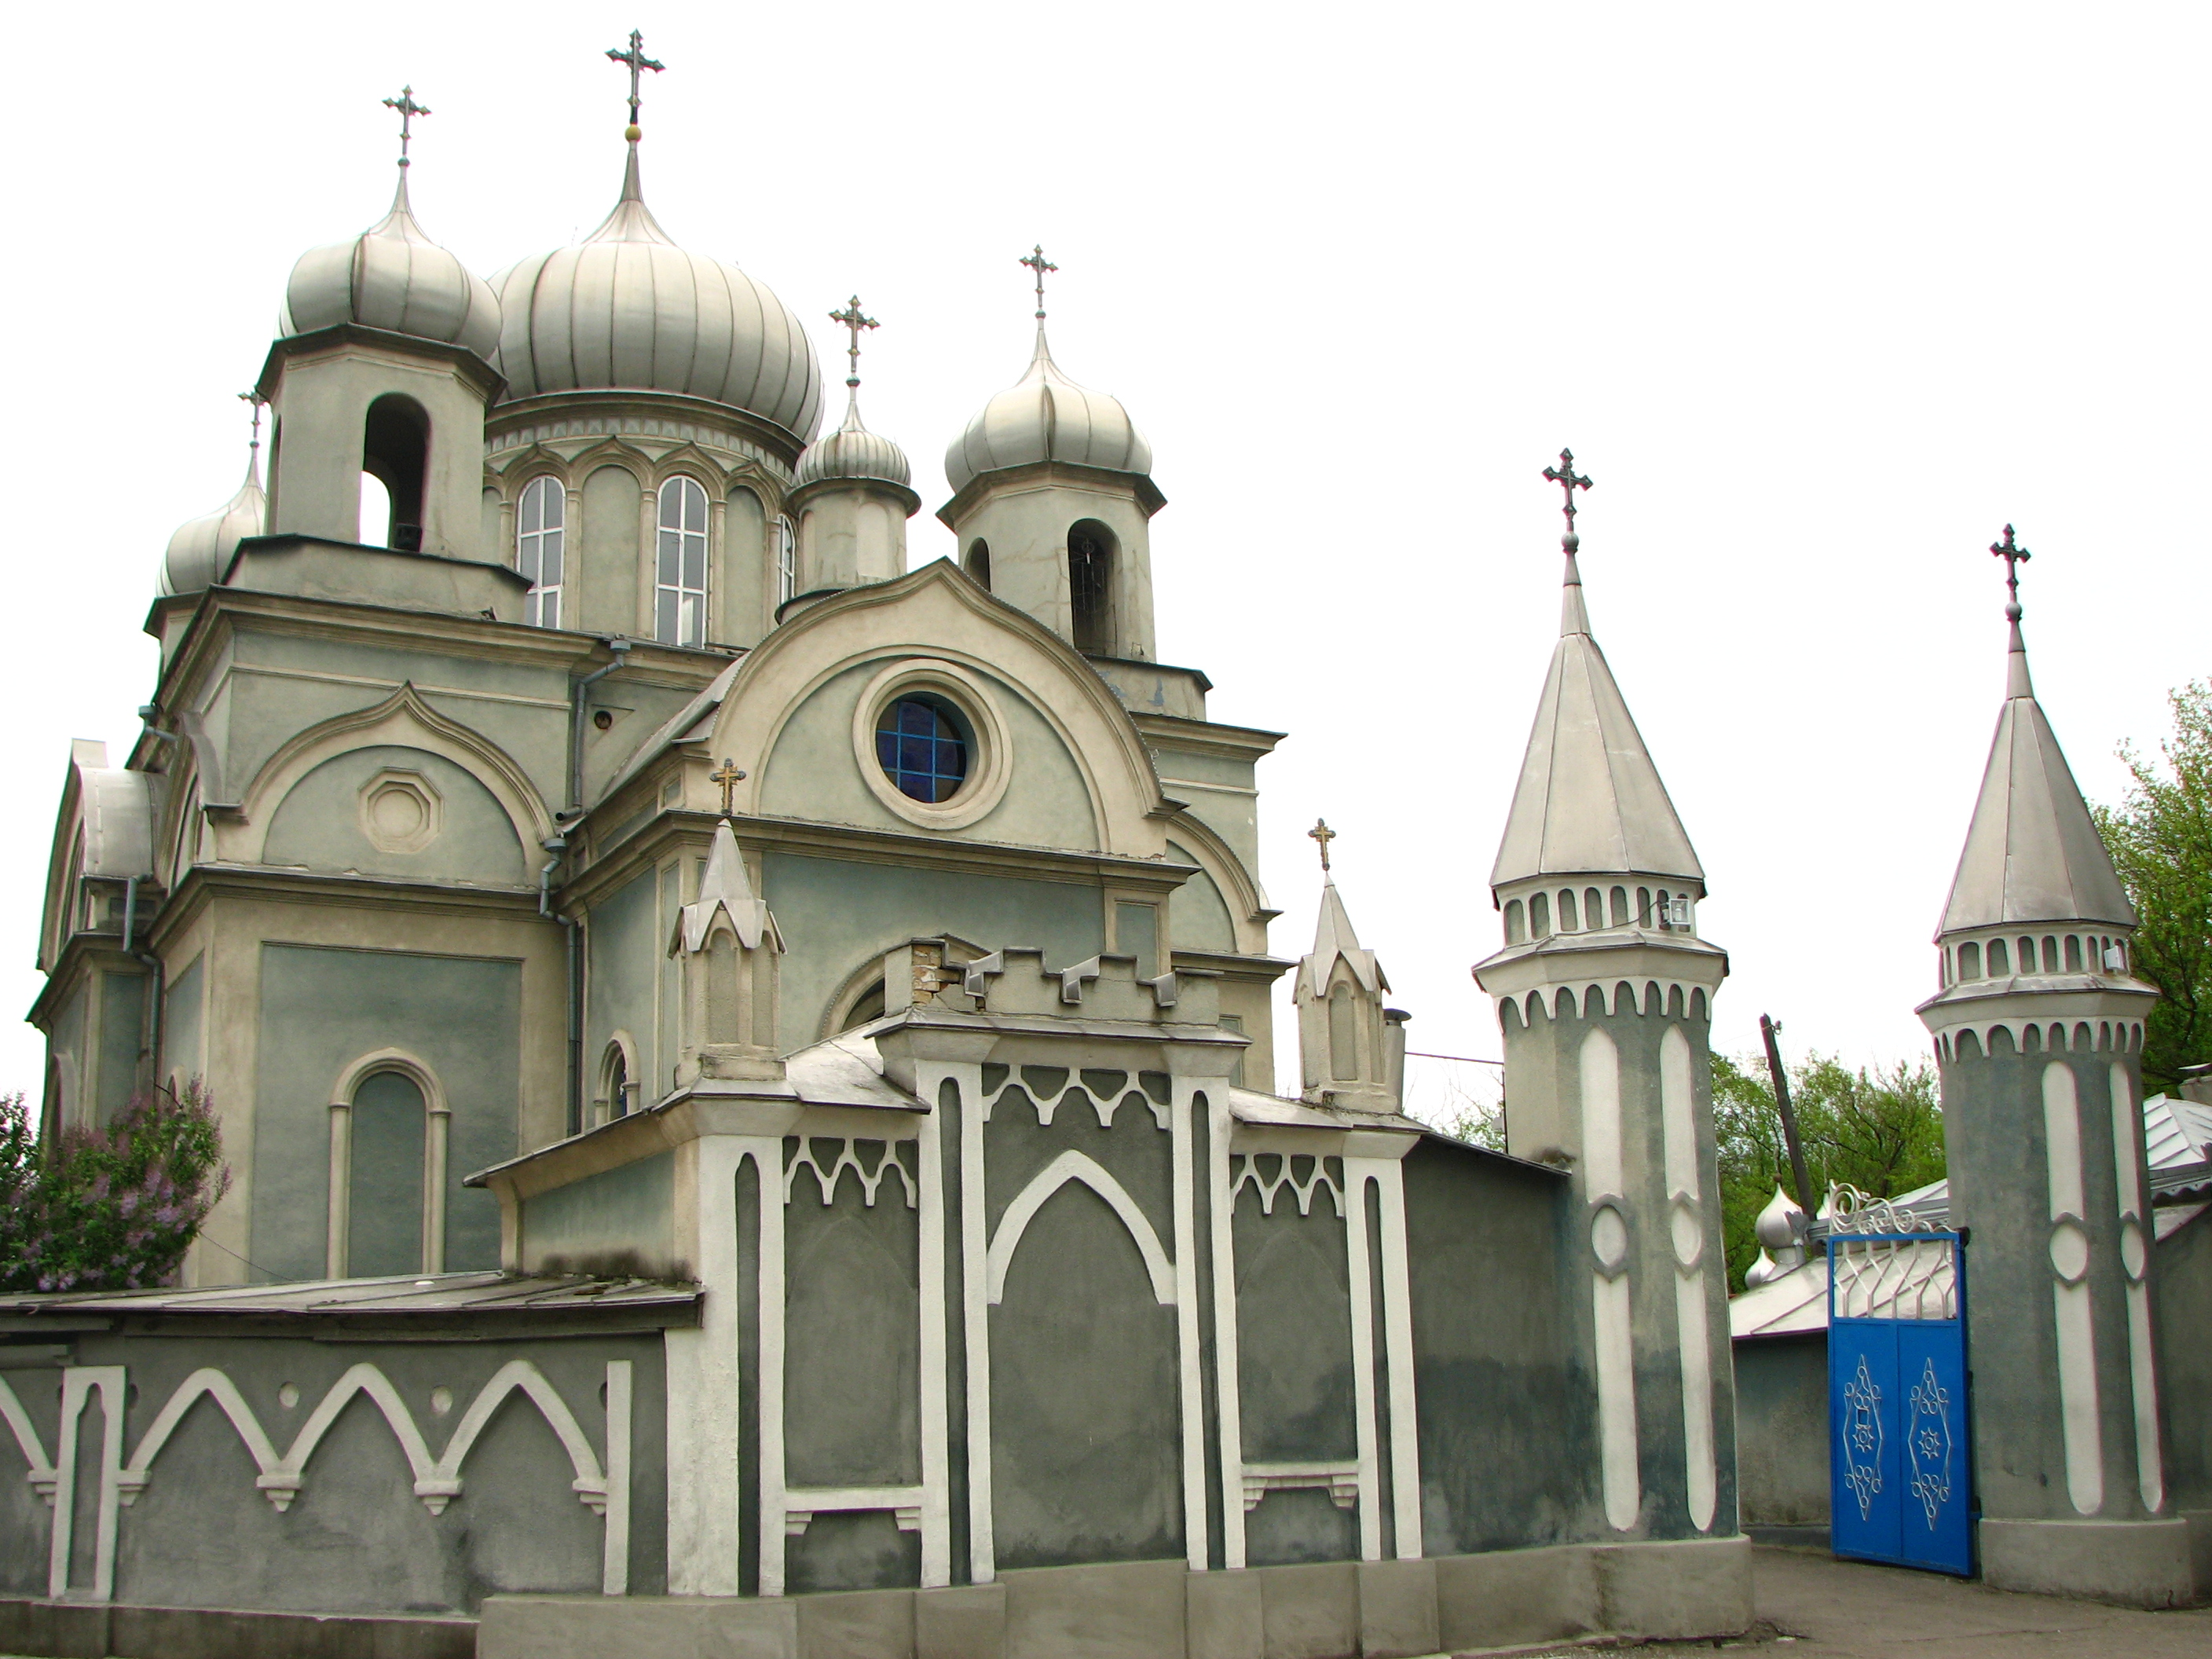 http://upload.wikimedia.org/wikipedia/commons/7/7a/Oleksandrivsk_church.jpg